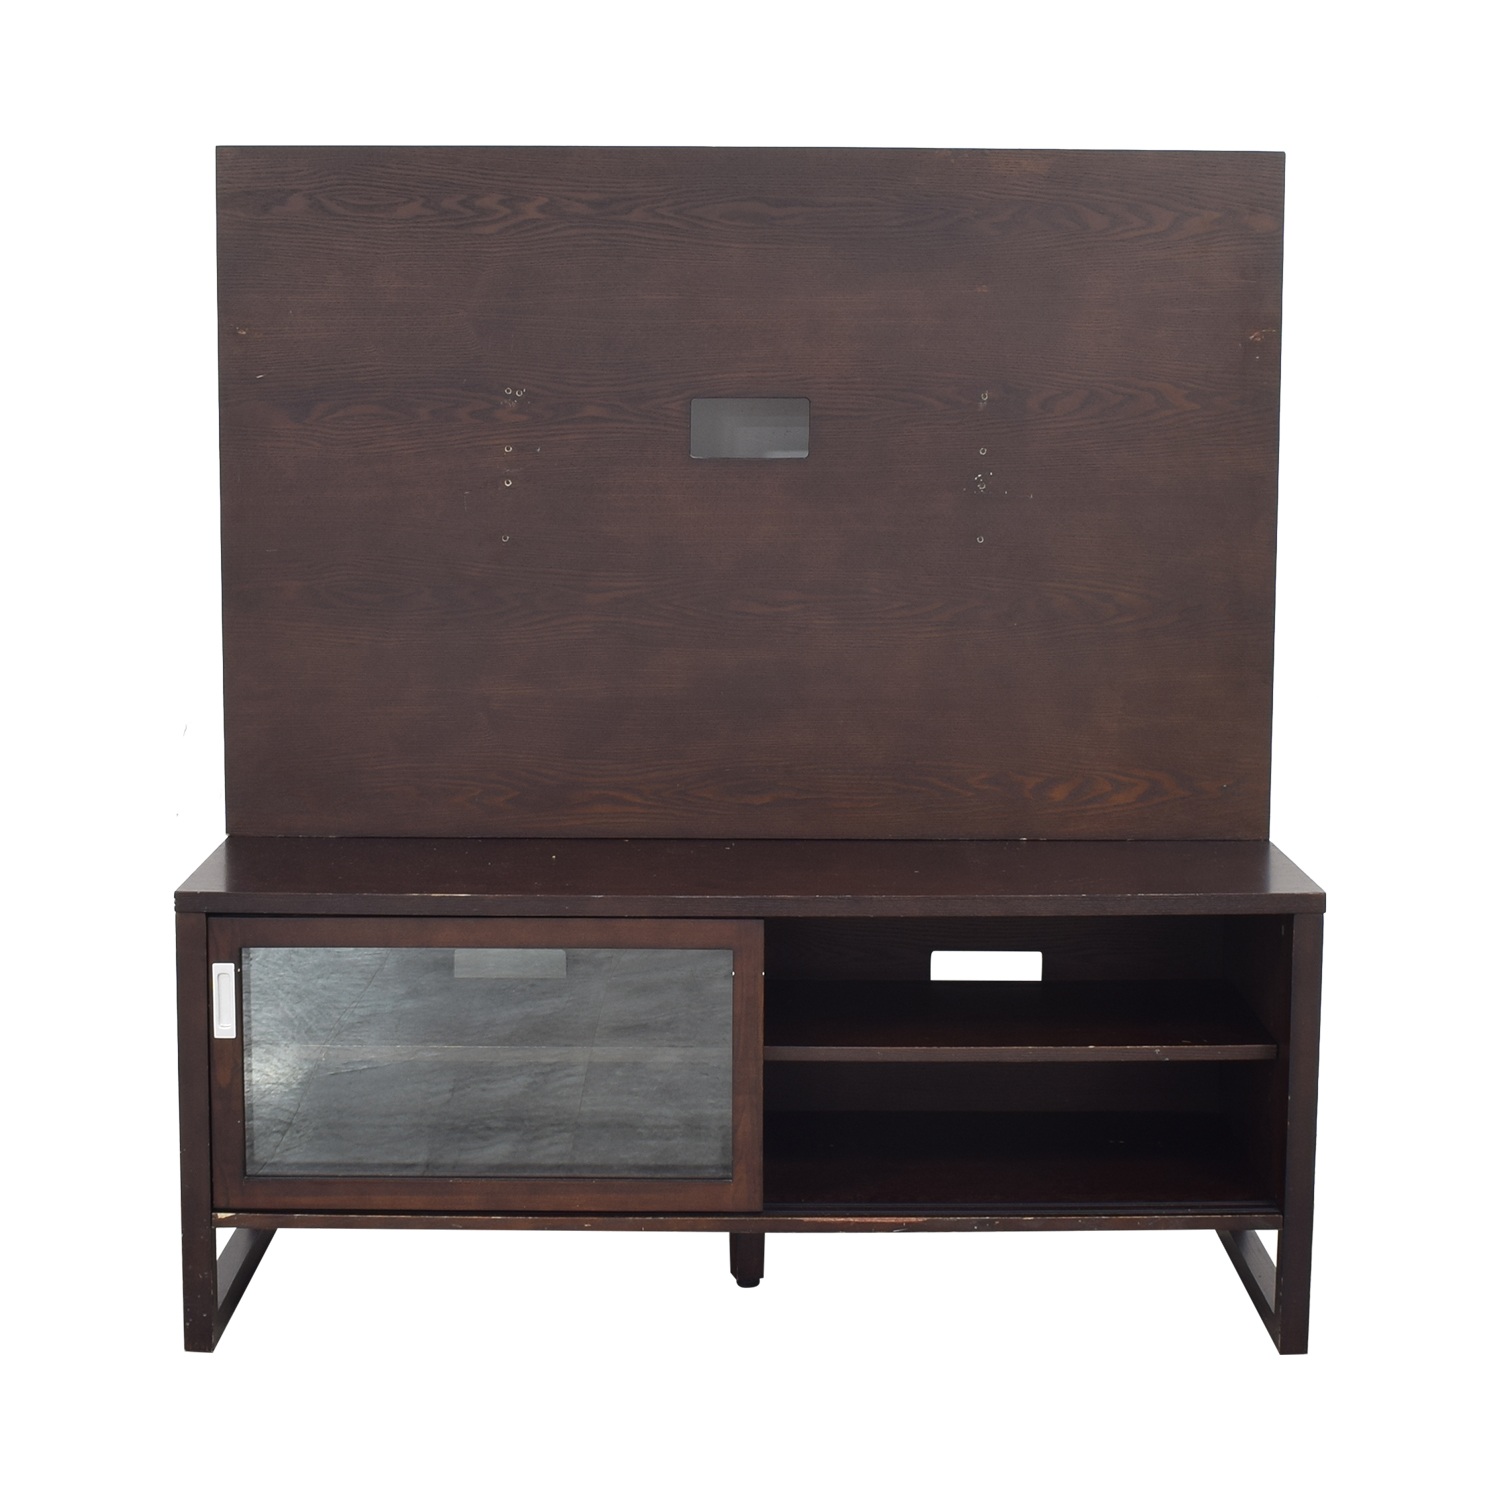 Crate & Barrel Entertainment Console with Back Panel sale